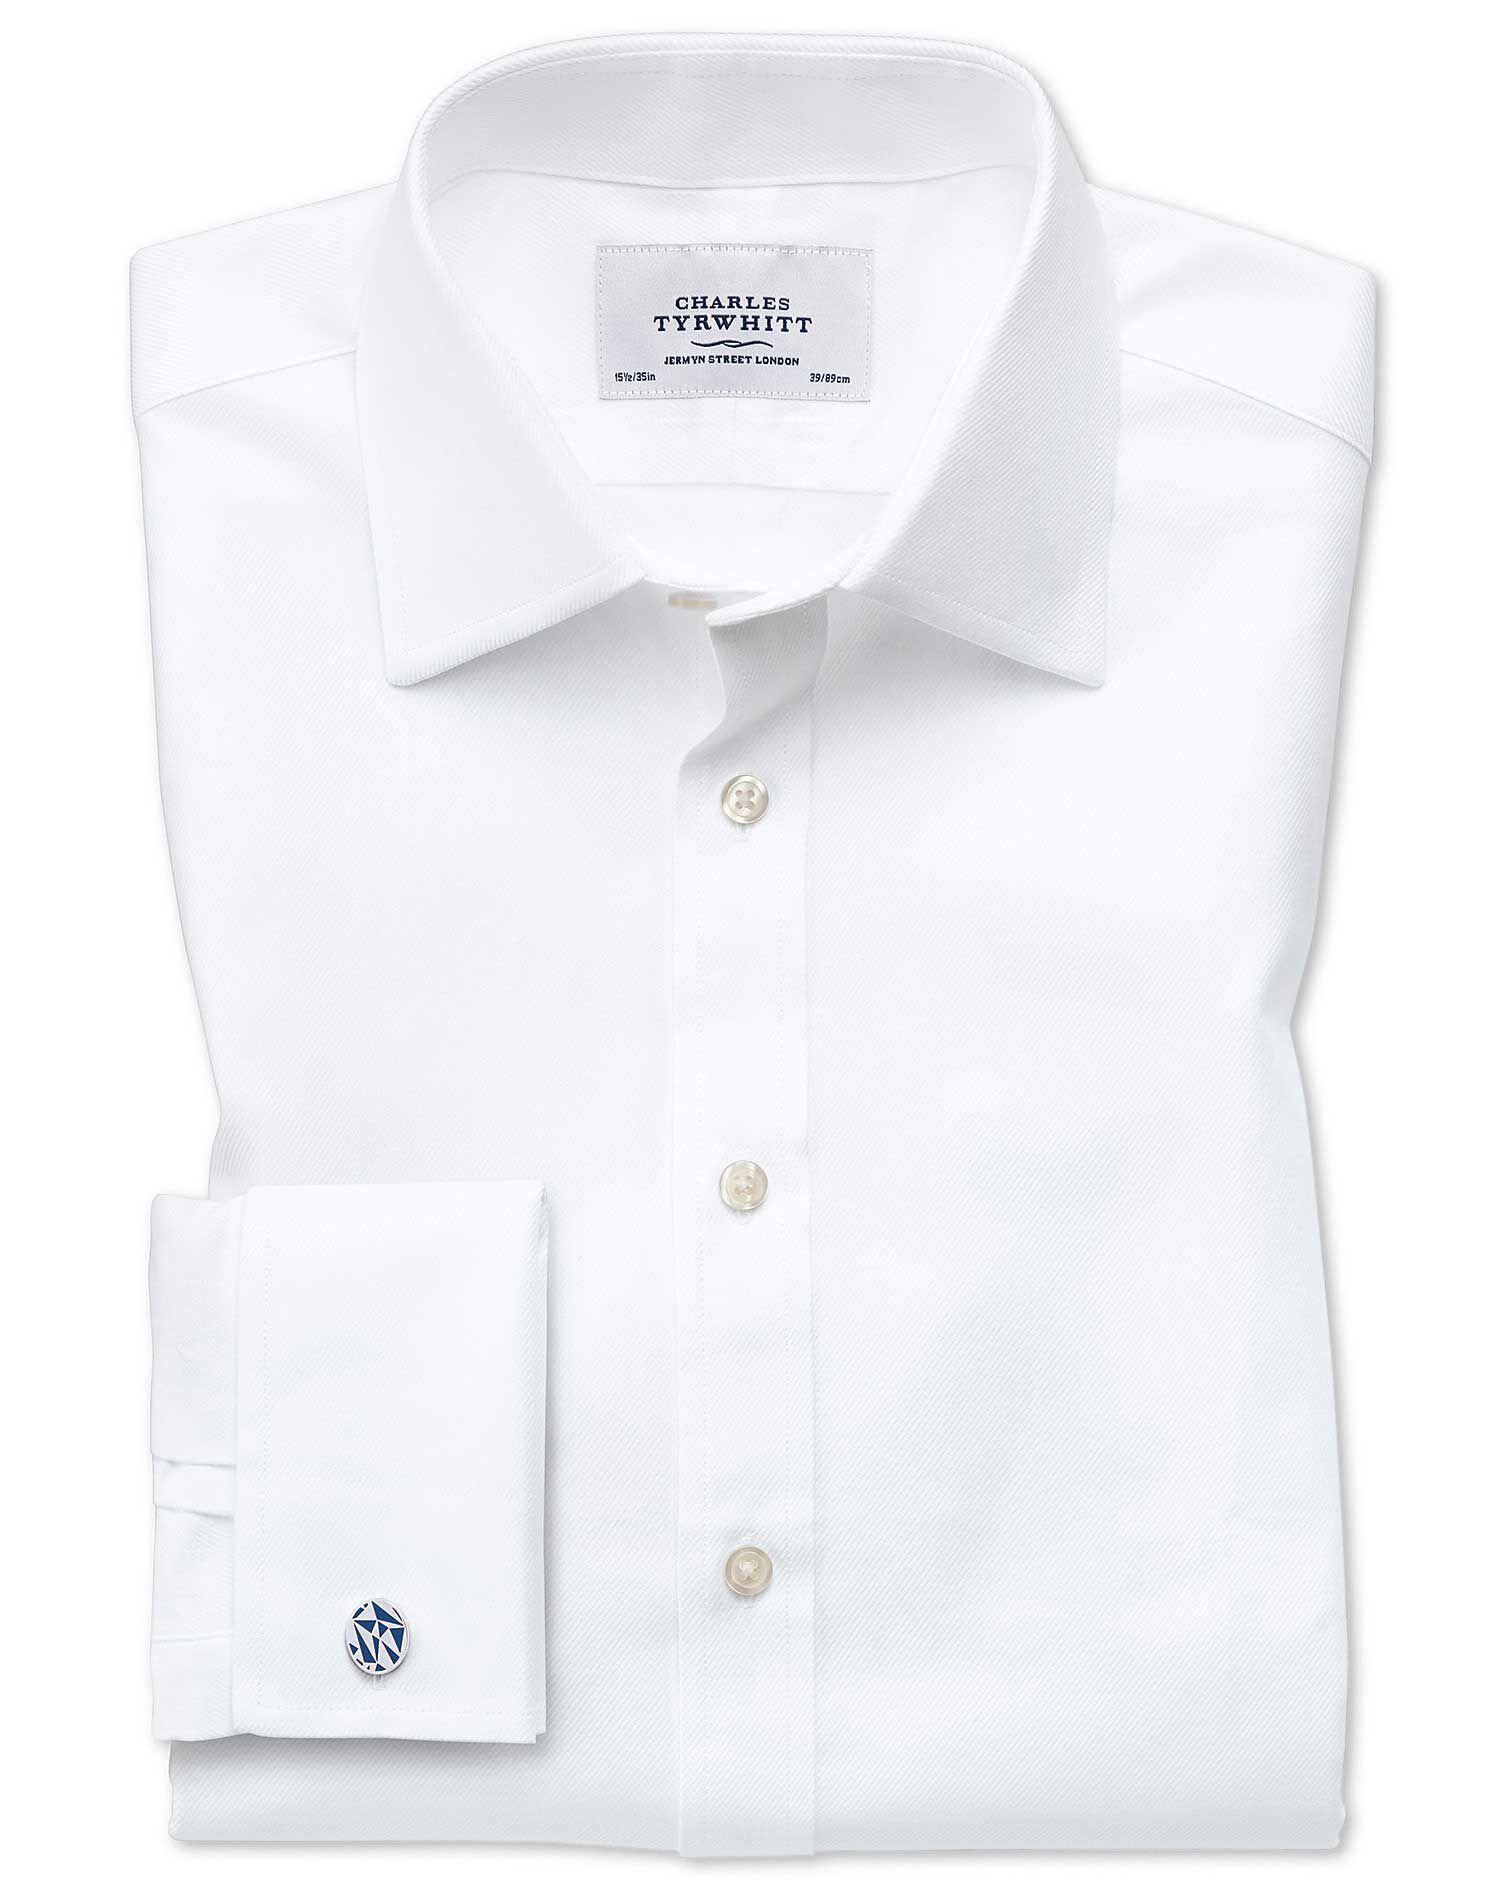 Classic Fit Egyptian Cotton Cavalry Twill White Formal Shirt Double Cuff Size 15.5/35 by Charles Tyr